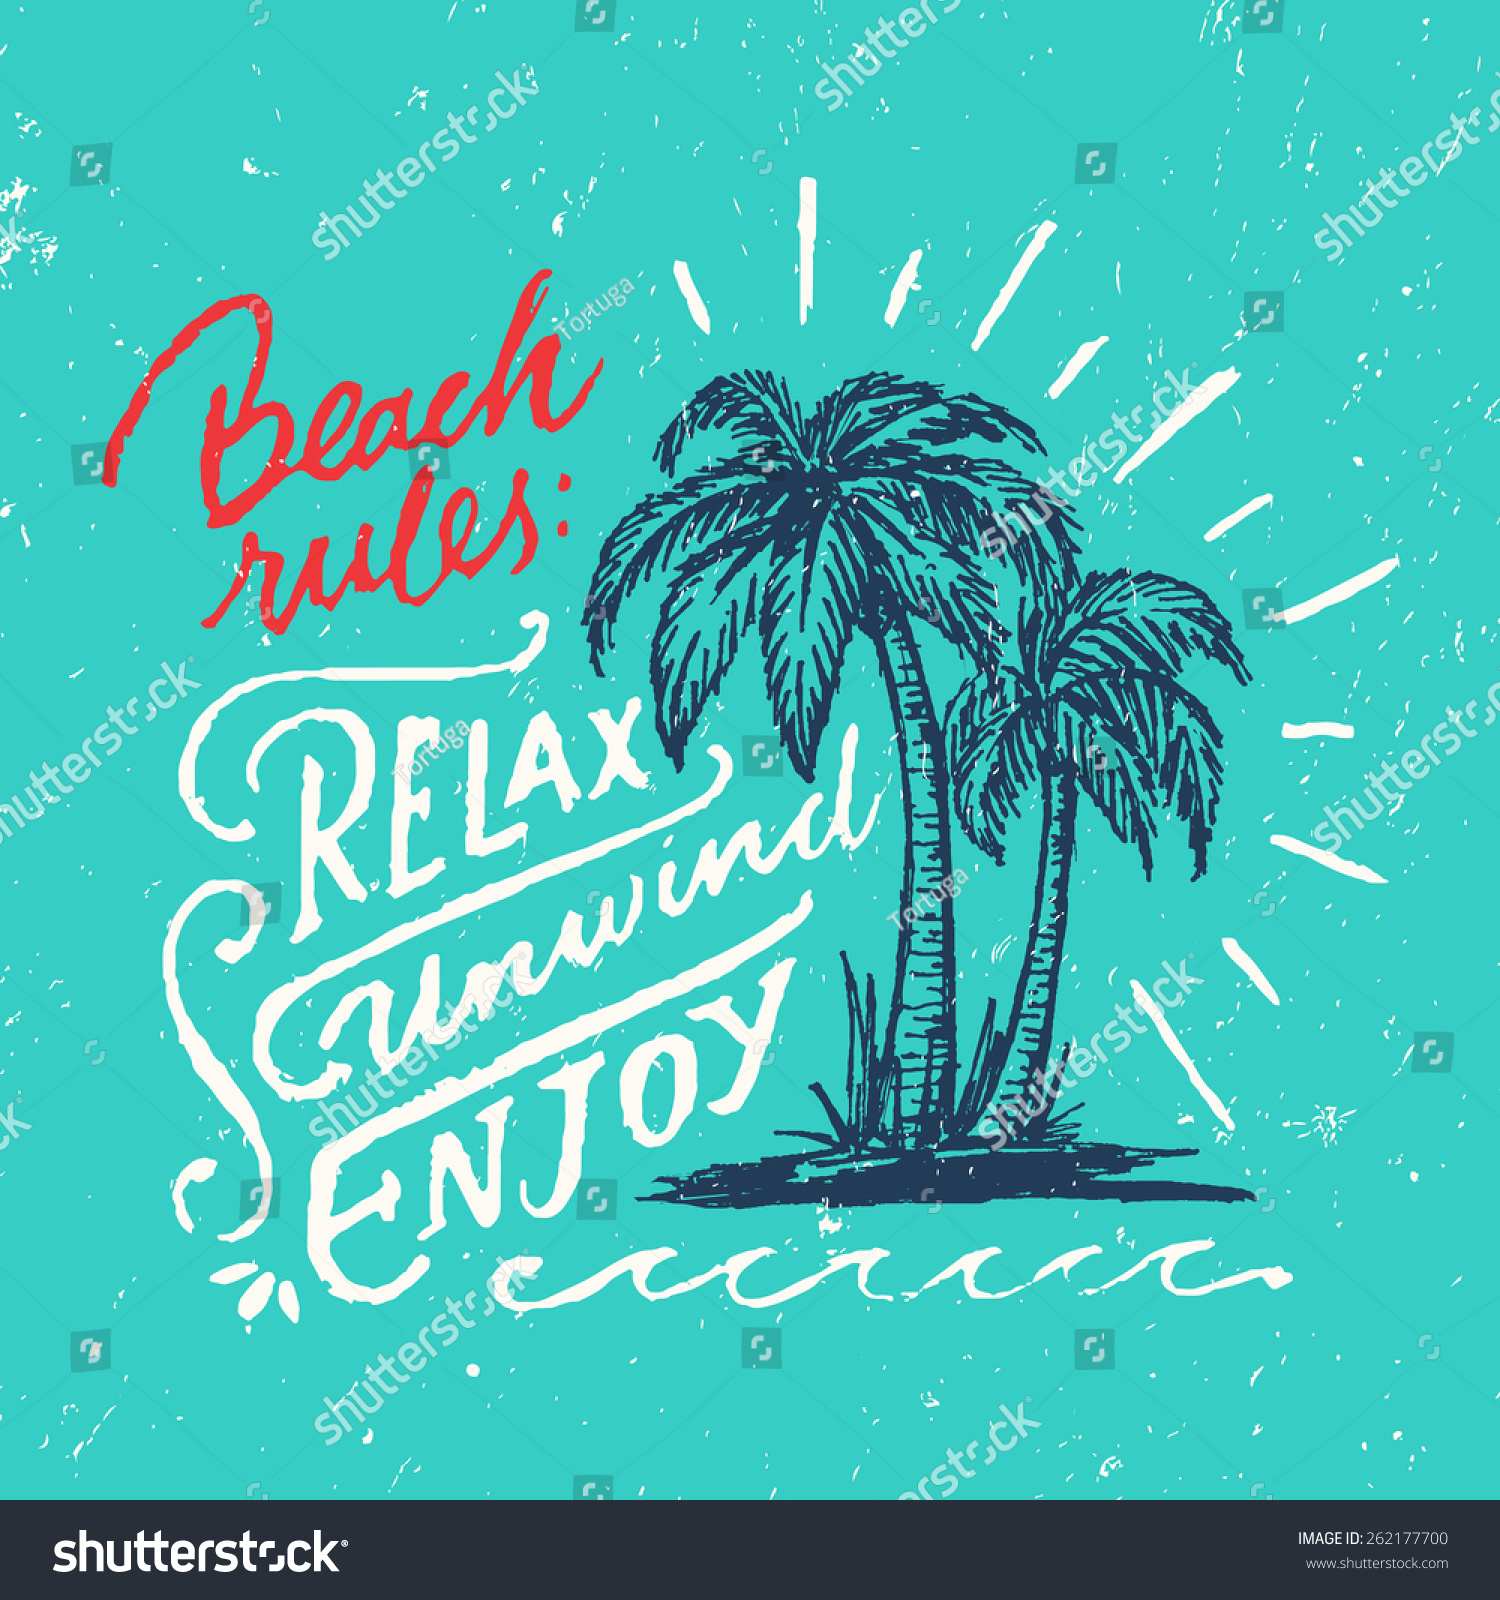 Beach Rules Relax Unwind Enjoy Handmade Royalty Free Stock